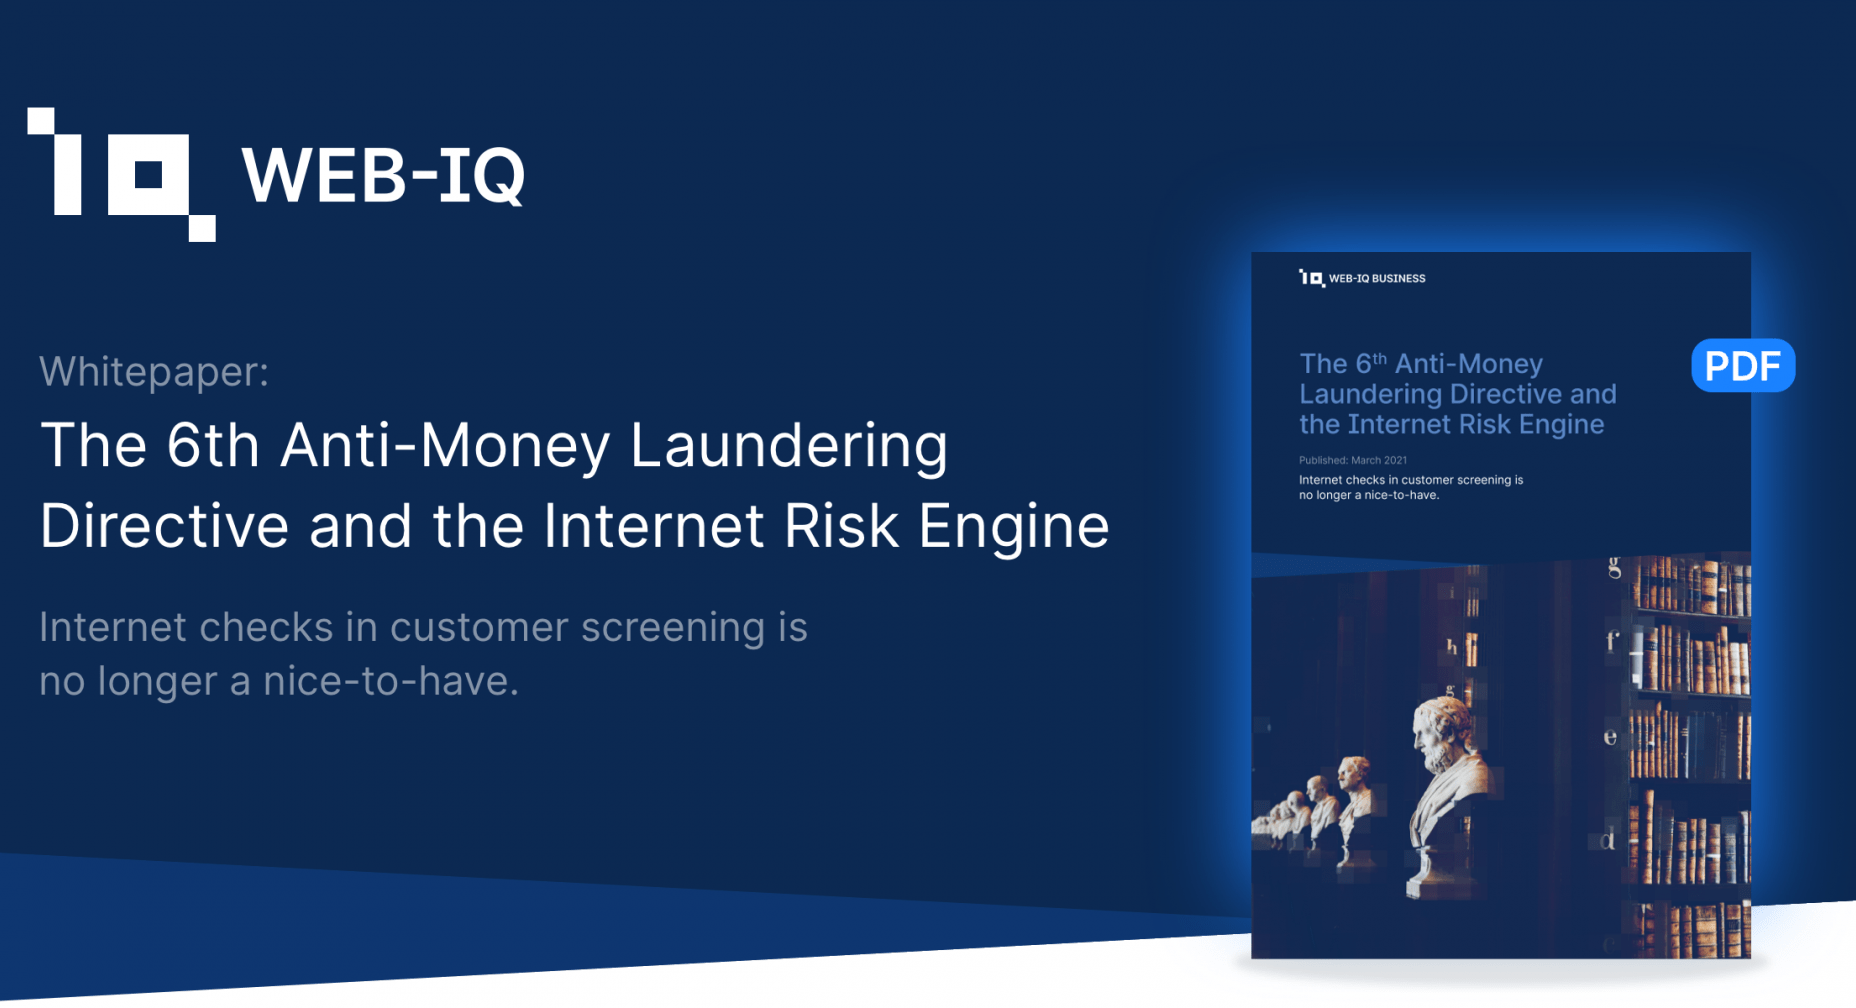 Web-IQ Business: The 6th Anti-Money laundering Directive and the Internet Risk Engine